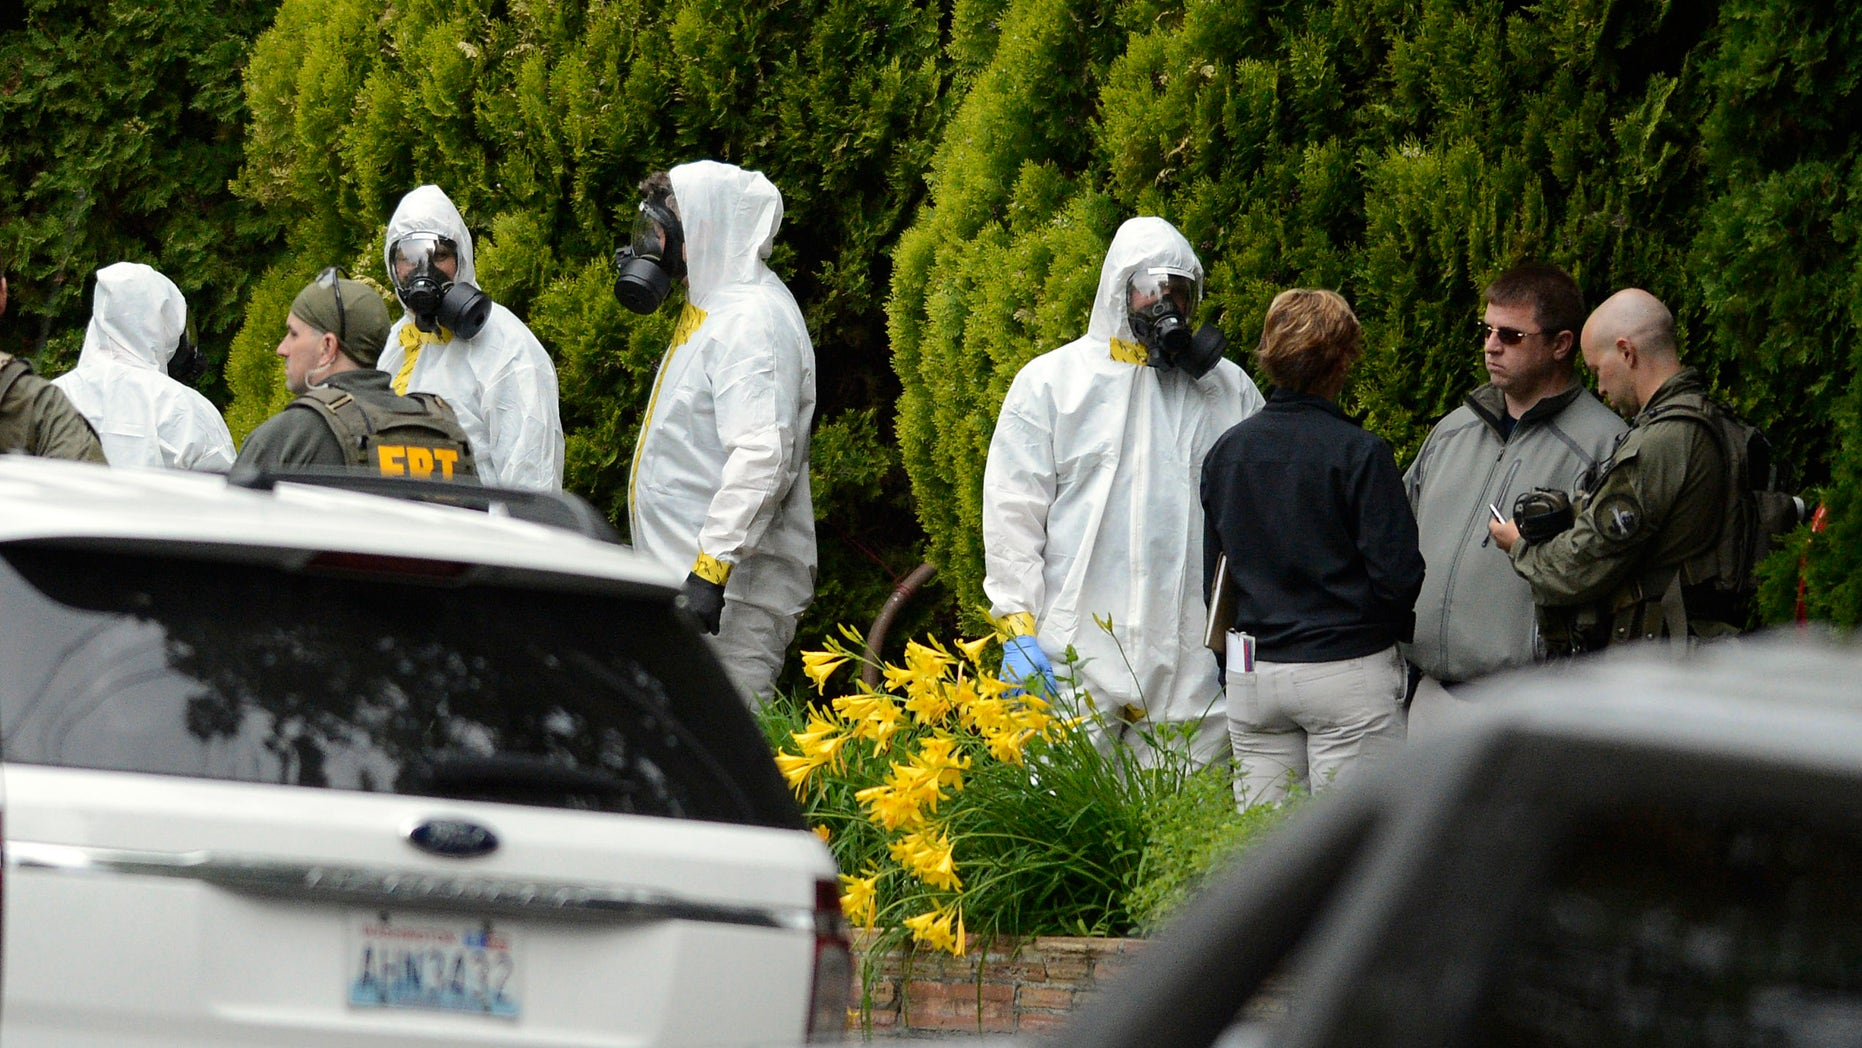 During the execution of a search warrant, members of the Joint Federal Haz-Mat Team, FBI, and local law enforcement gather in front of the Osmun Apartments near the intersection of First Avenue and Oak Street in Browne's Addition on Saturday, May 18, 2013 in Spokane, Wash. The search warrant is in connection with ricin-laced letters intercepted at a Post Office facility in Spokane earlier in the week. (AP Photo/TheSpokesman-Review, Colin Mulvany) COEUR D'ALENE PRESS OUT